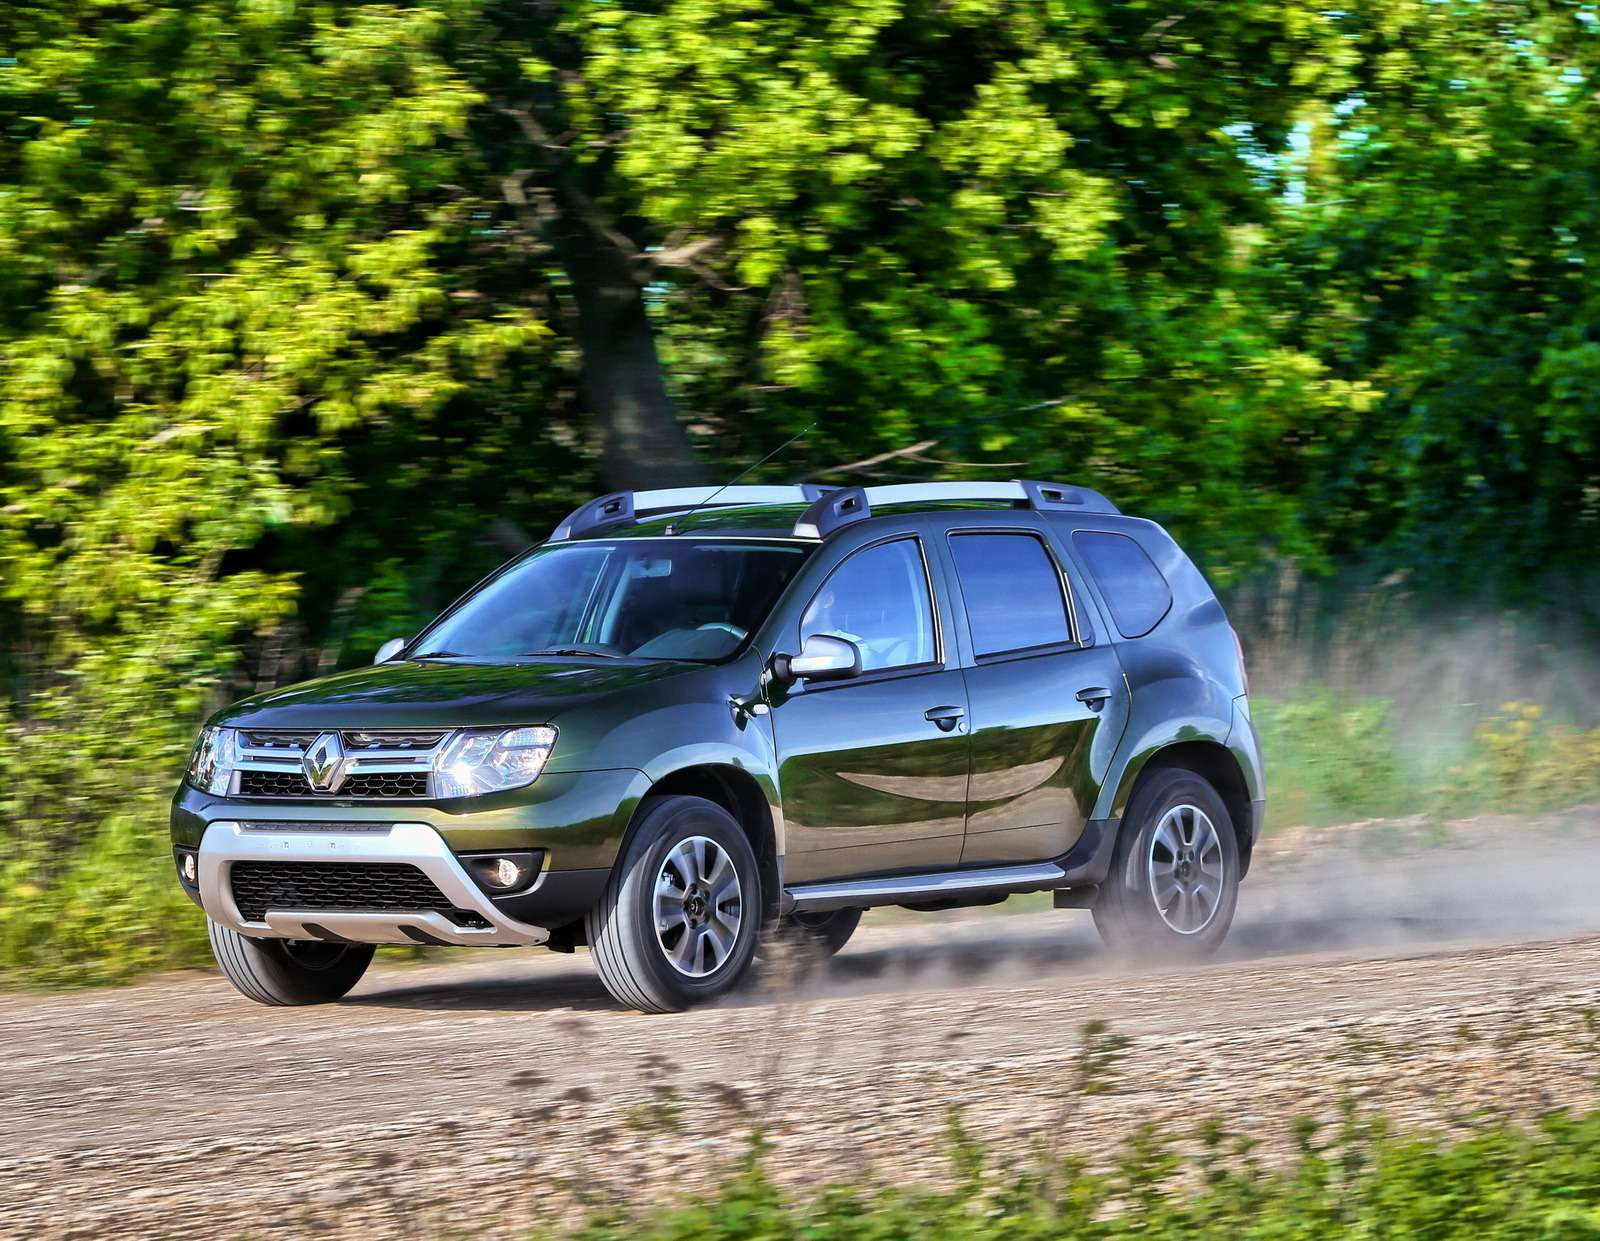 05Duster New_zr 07_15-HDR